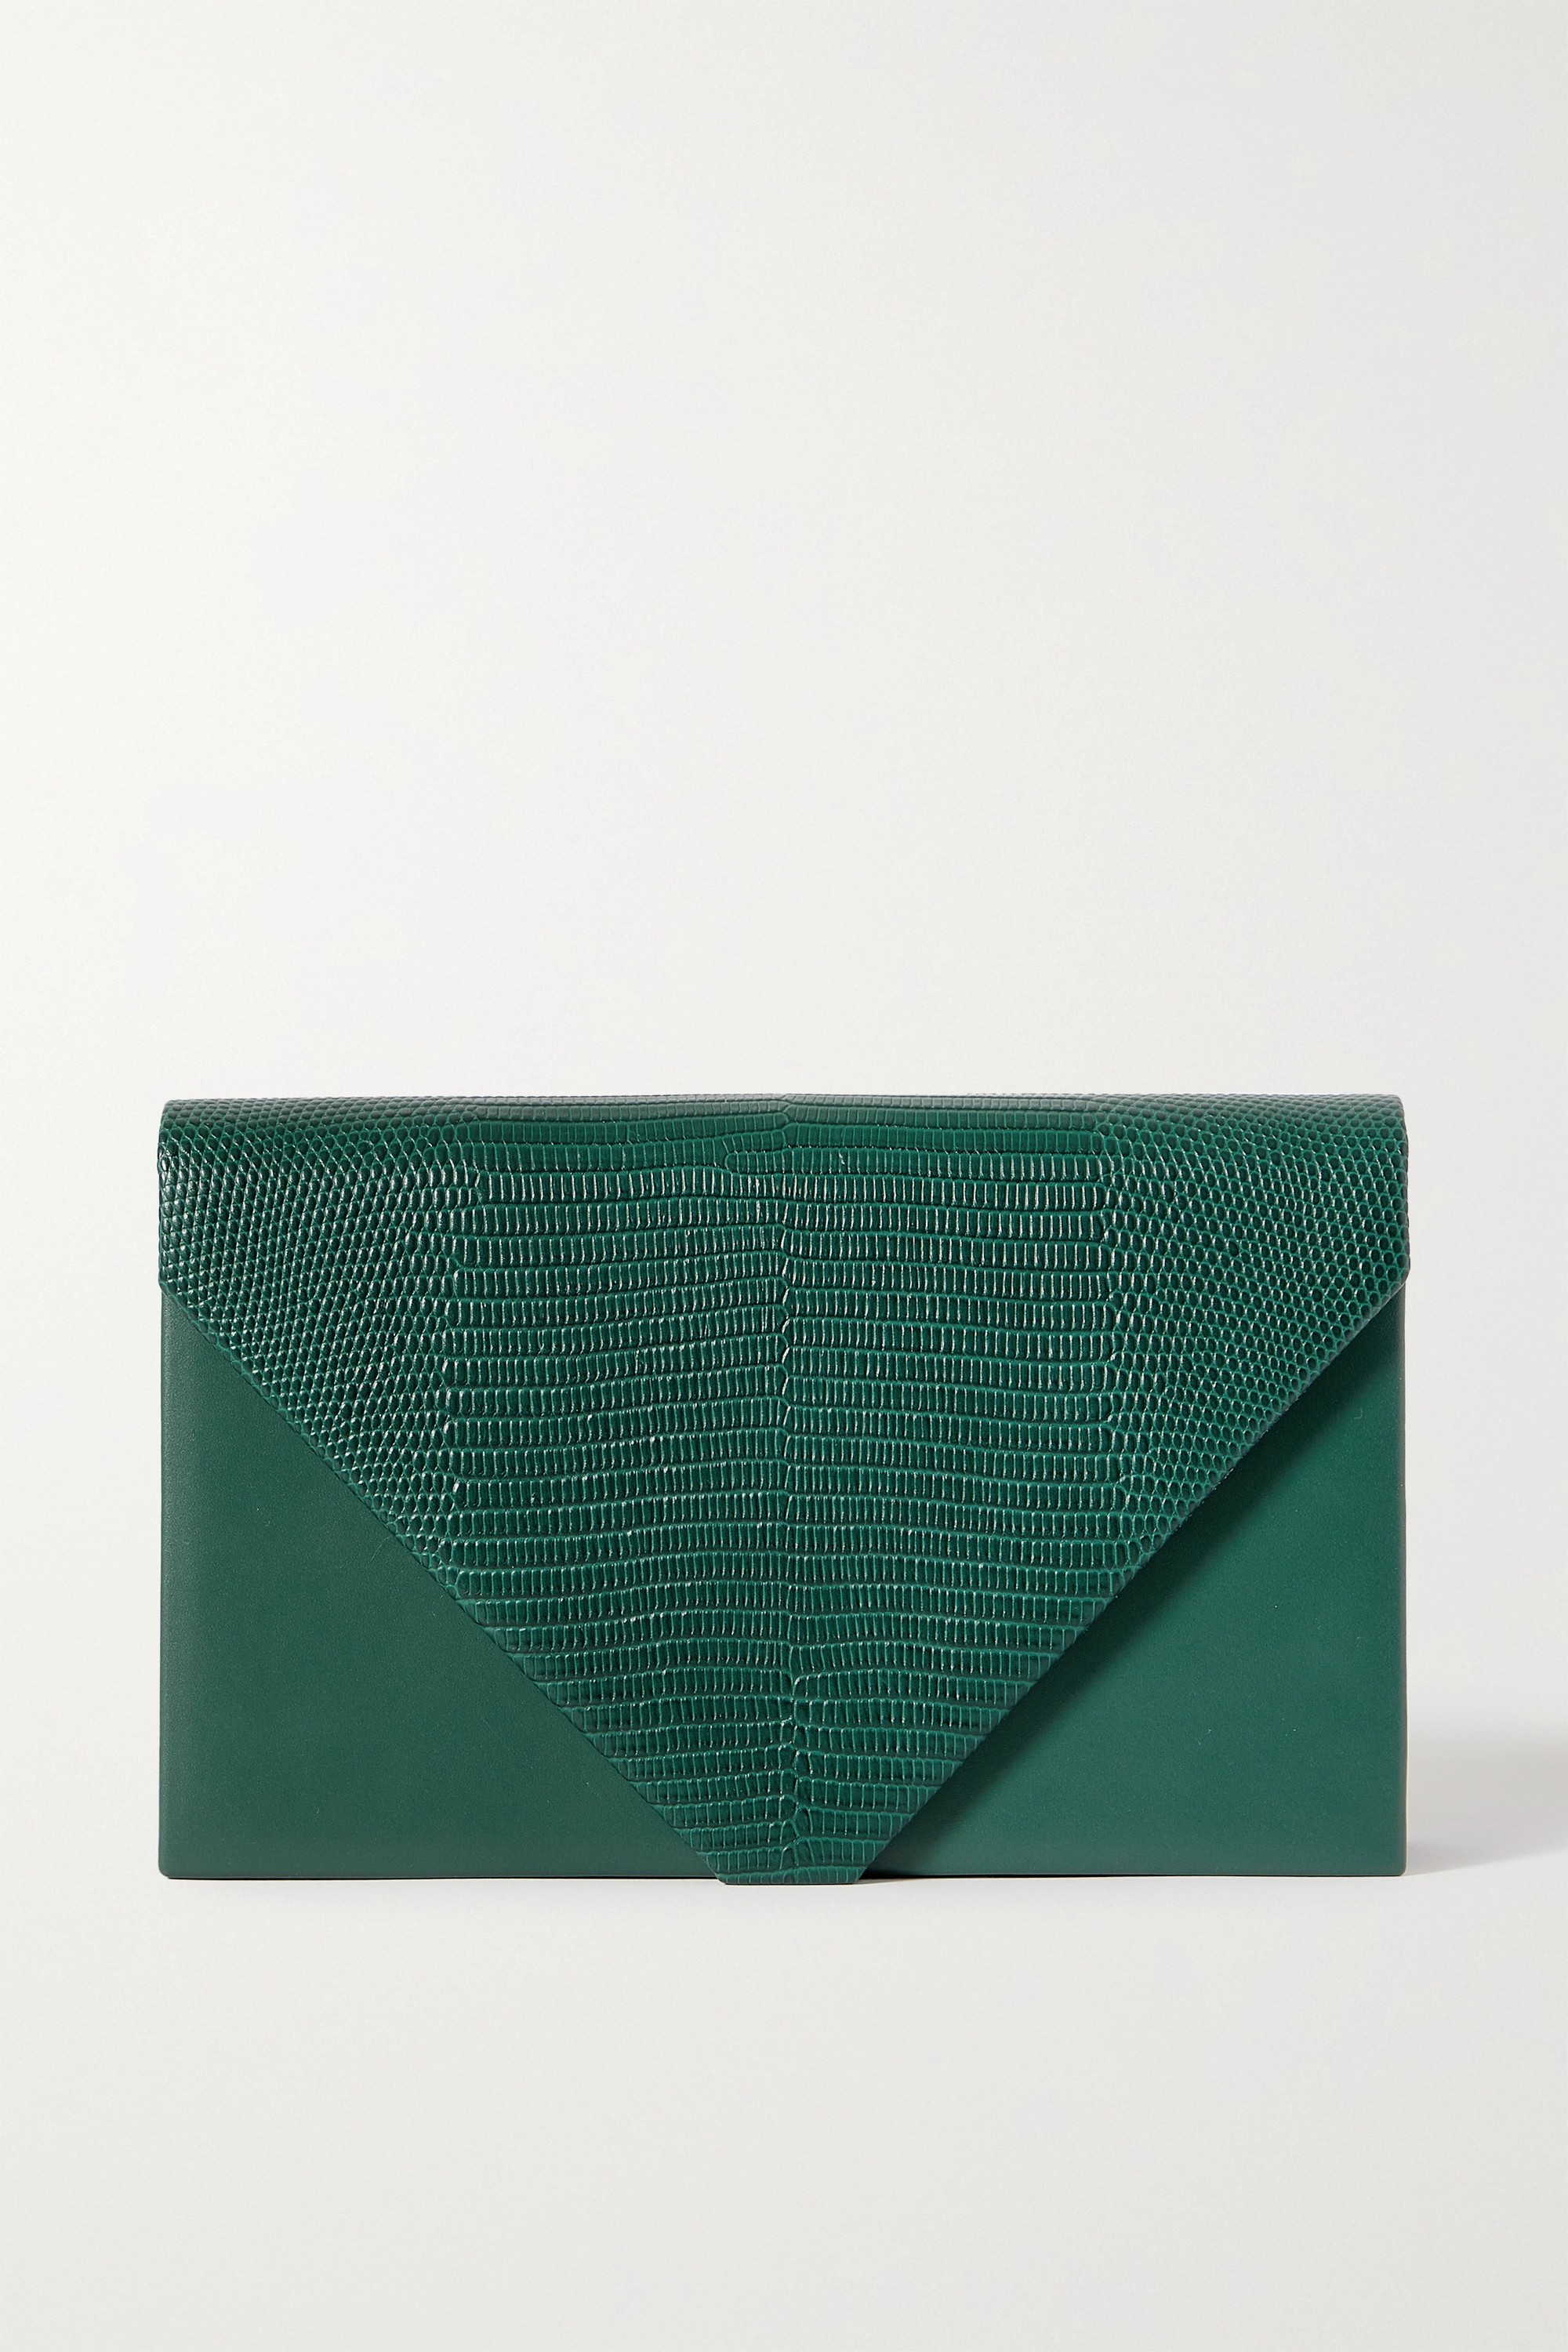 Hunting Season - Envelope smooth and lizard-effect leather clutch